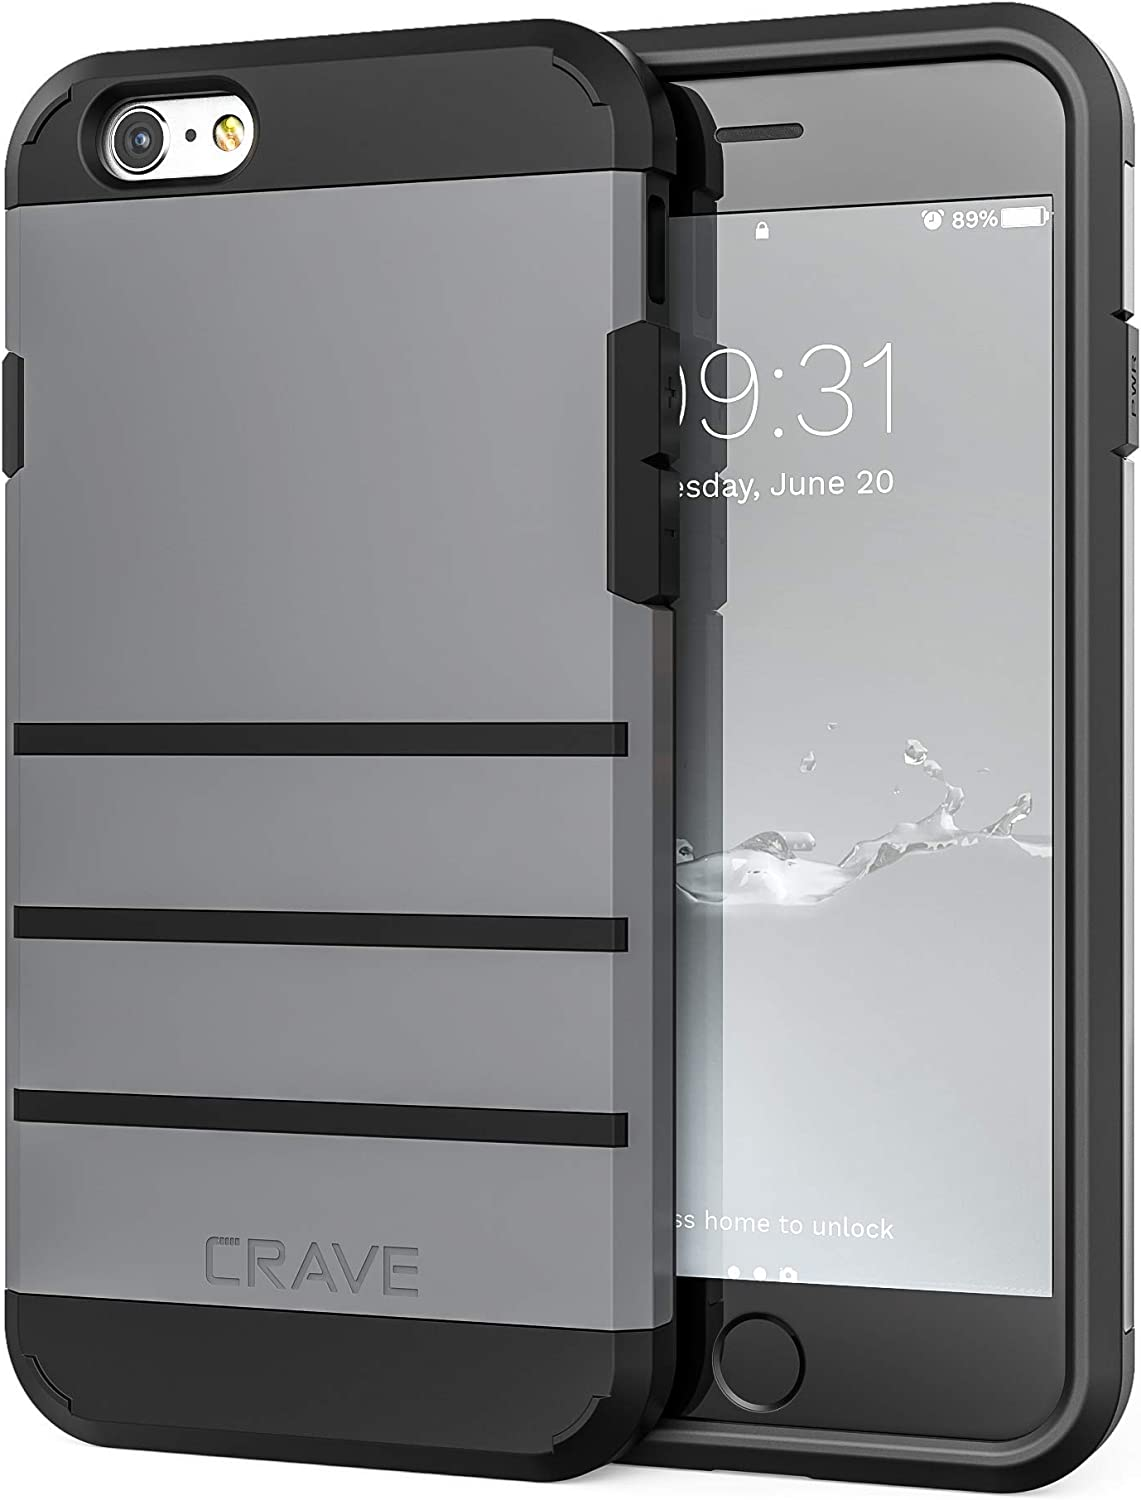 iPhone 6S Case, iPhone 6 Case, Crave Strong Guard Protection Series Case for Apple iPhone 6 6s (4.7 Inch) - Slate